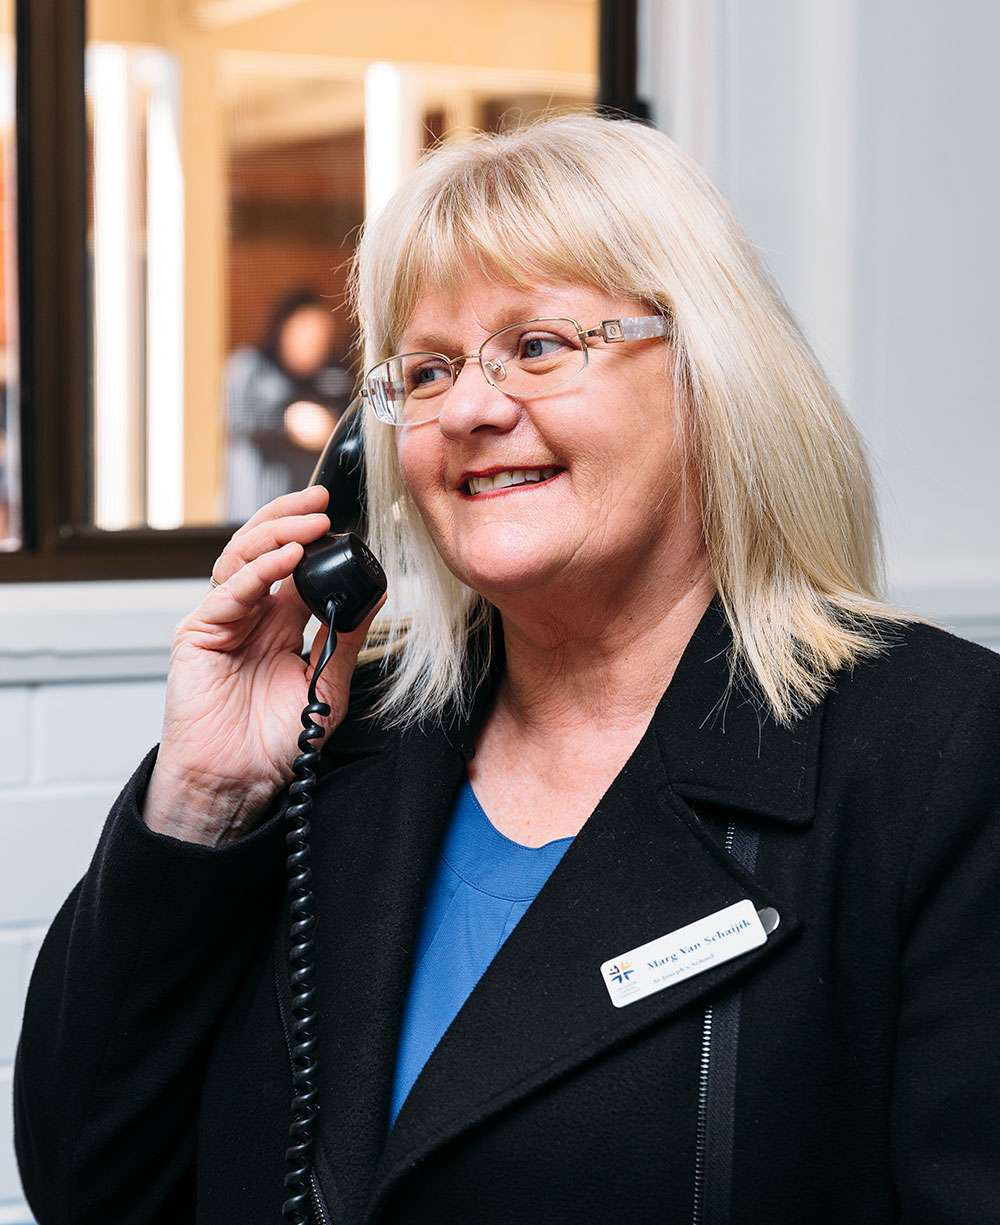 School receptionist answering phone call